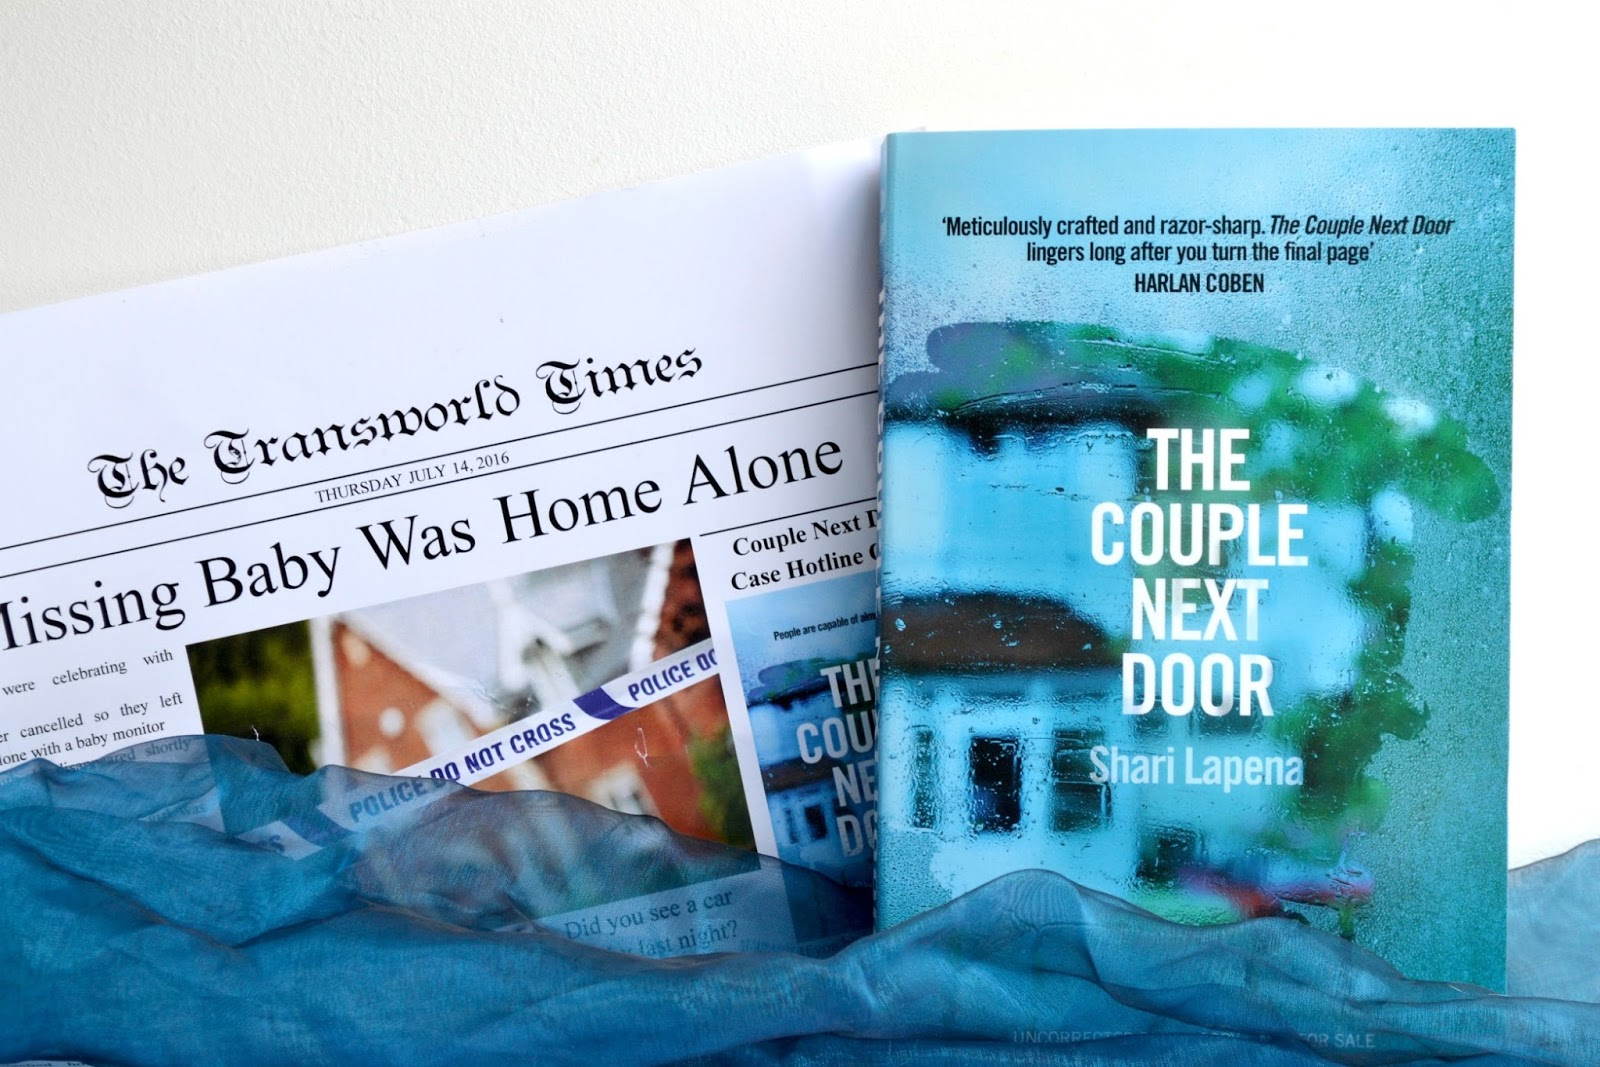 Imogen S Typewriter Book Review The Couple Next Door By